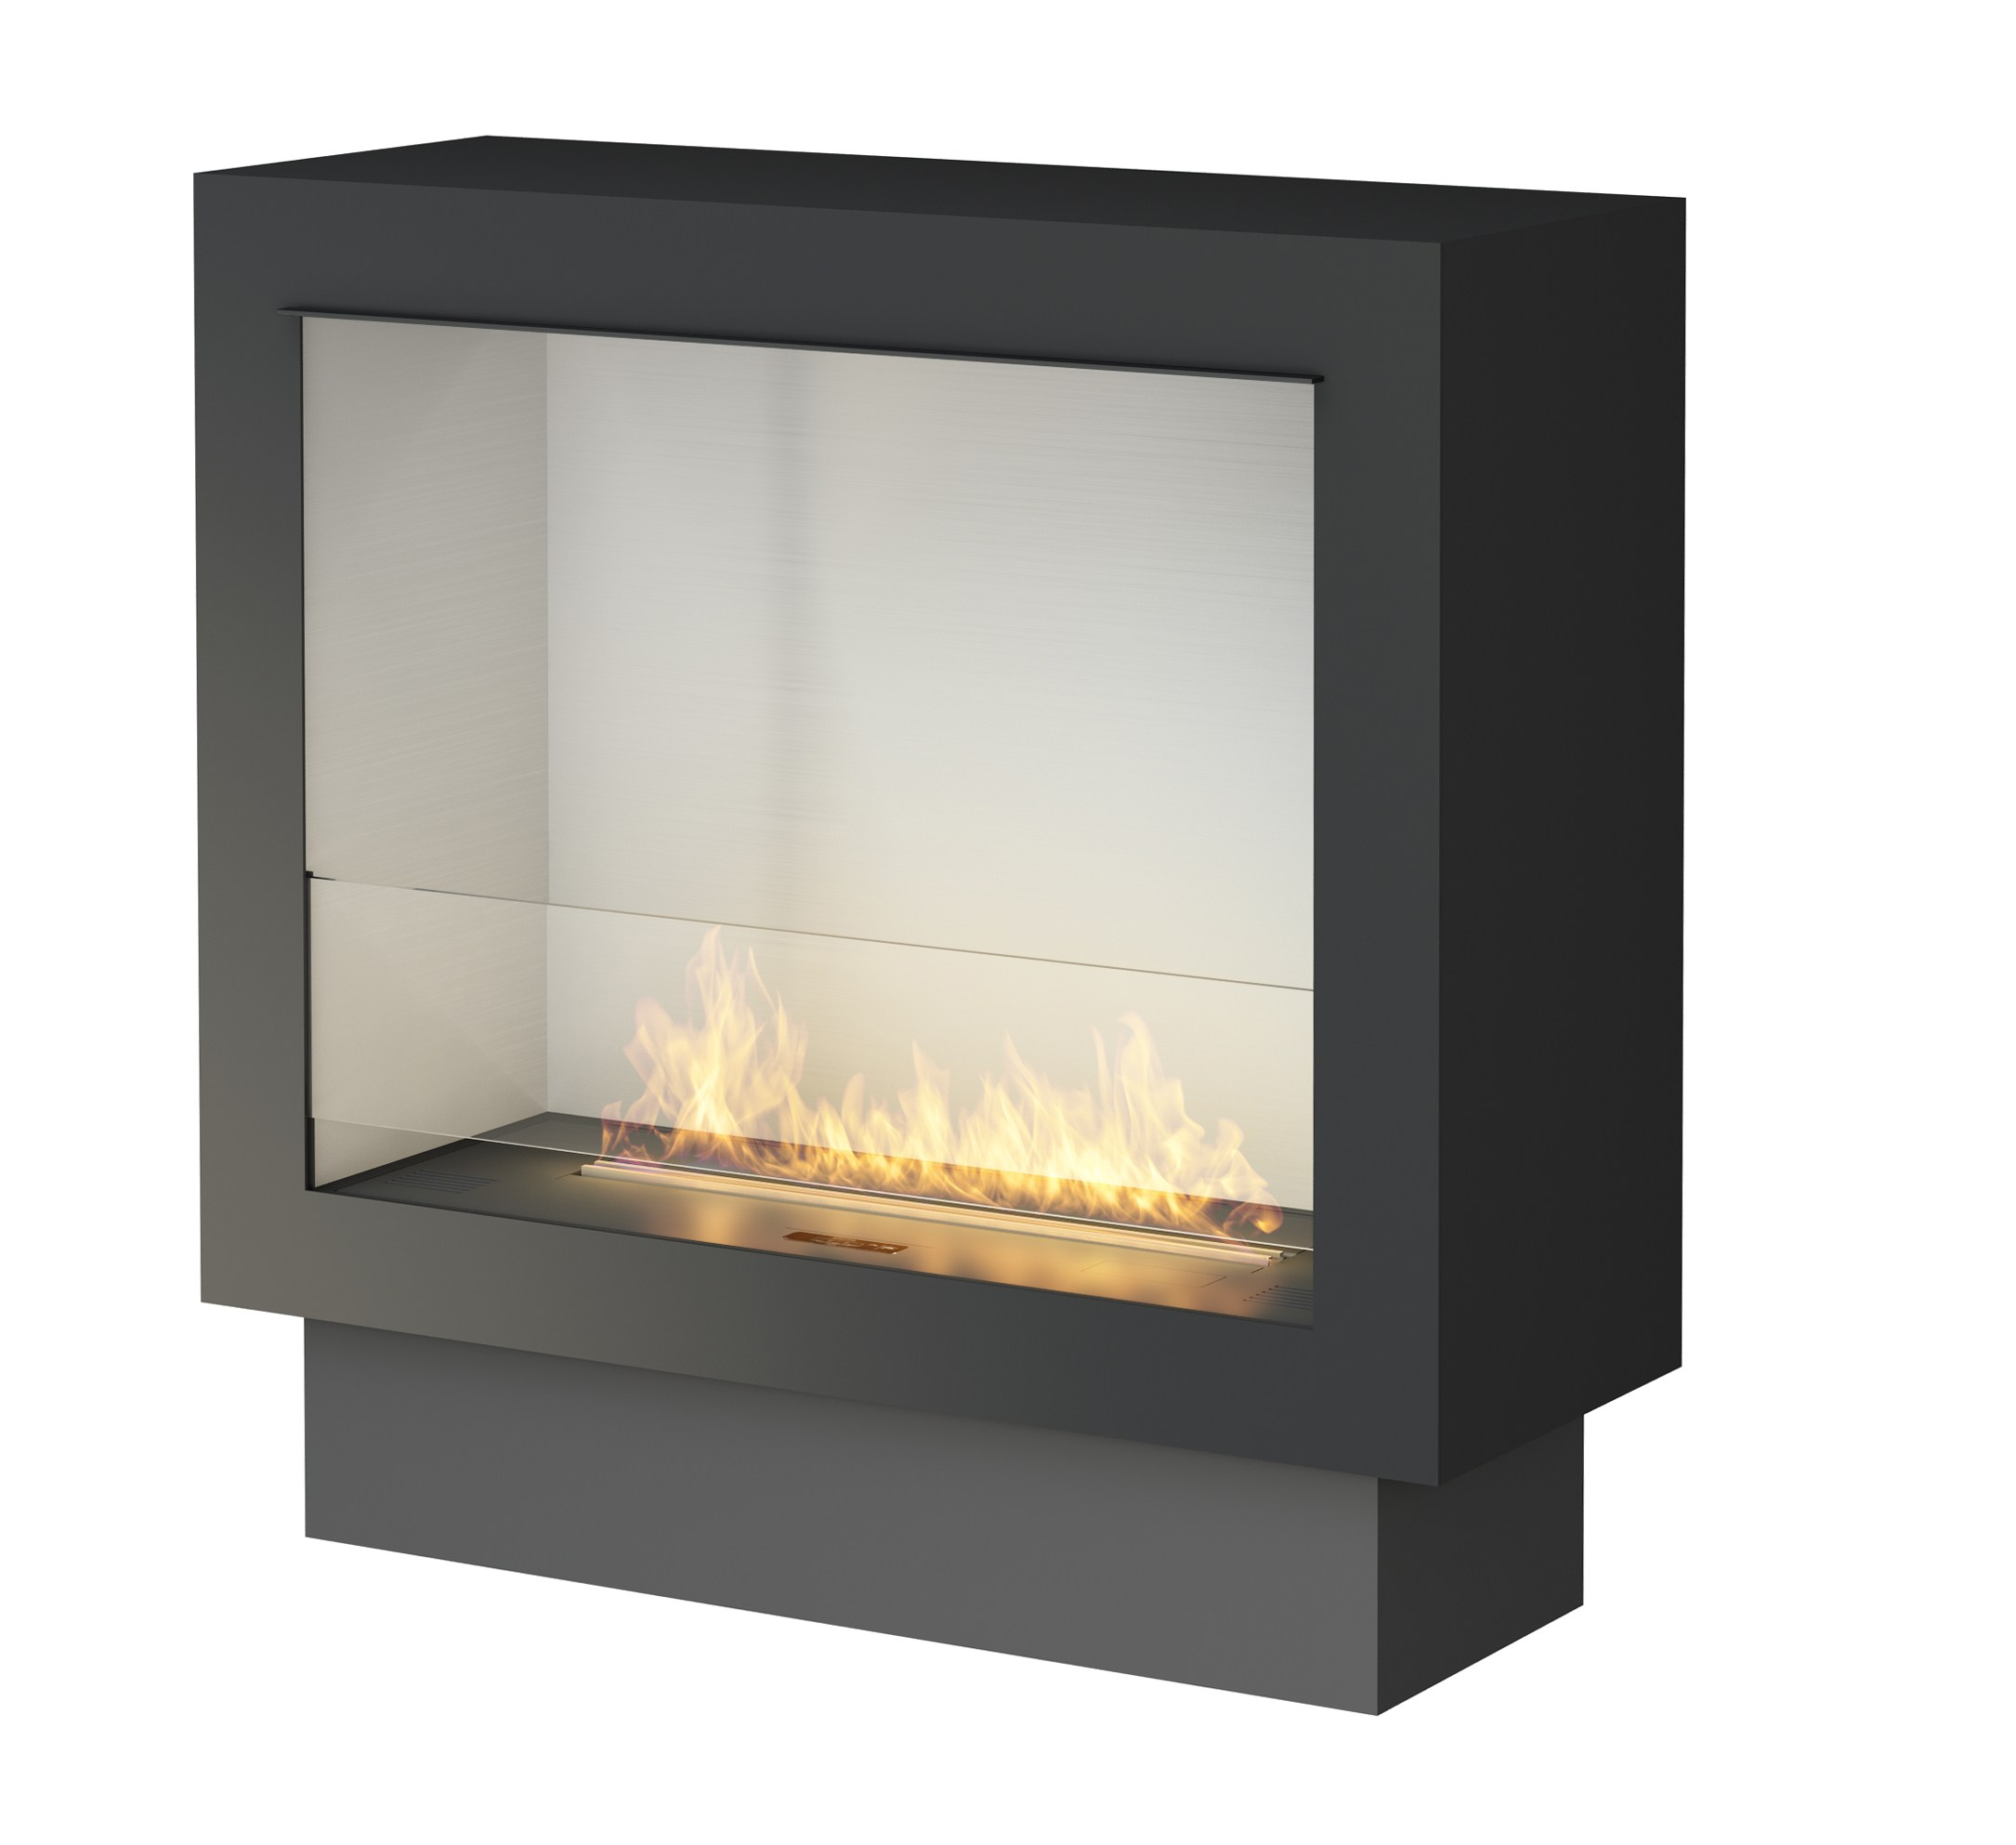 primebox fireplace with remote control by planika